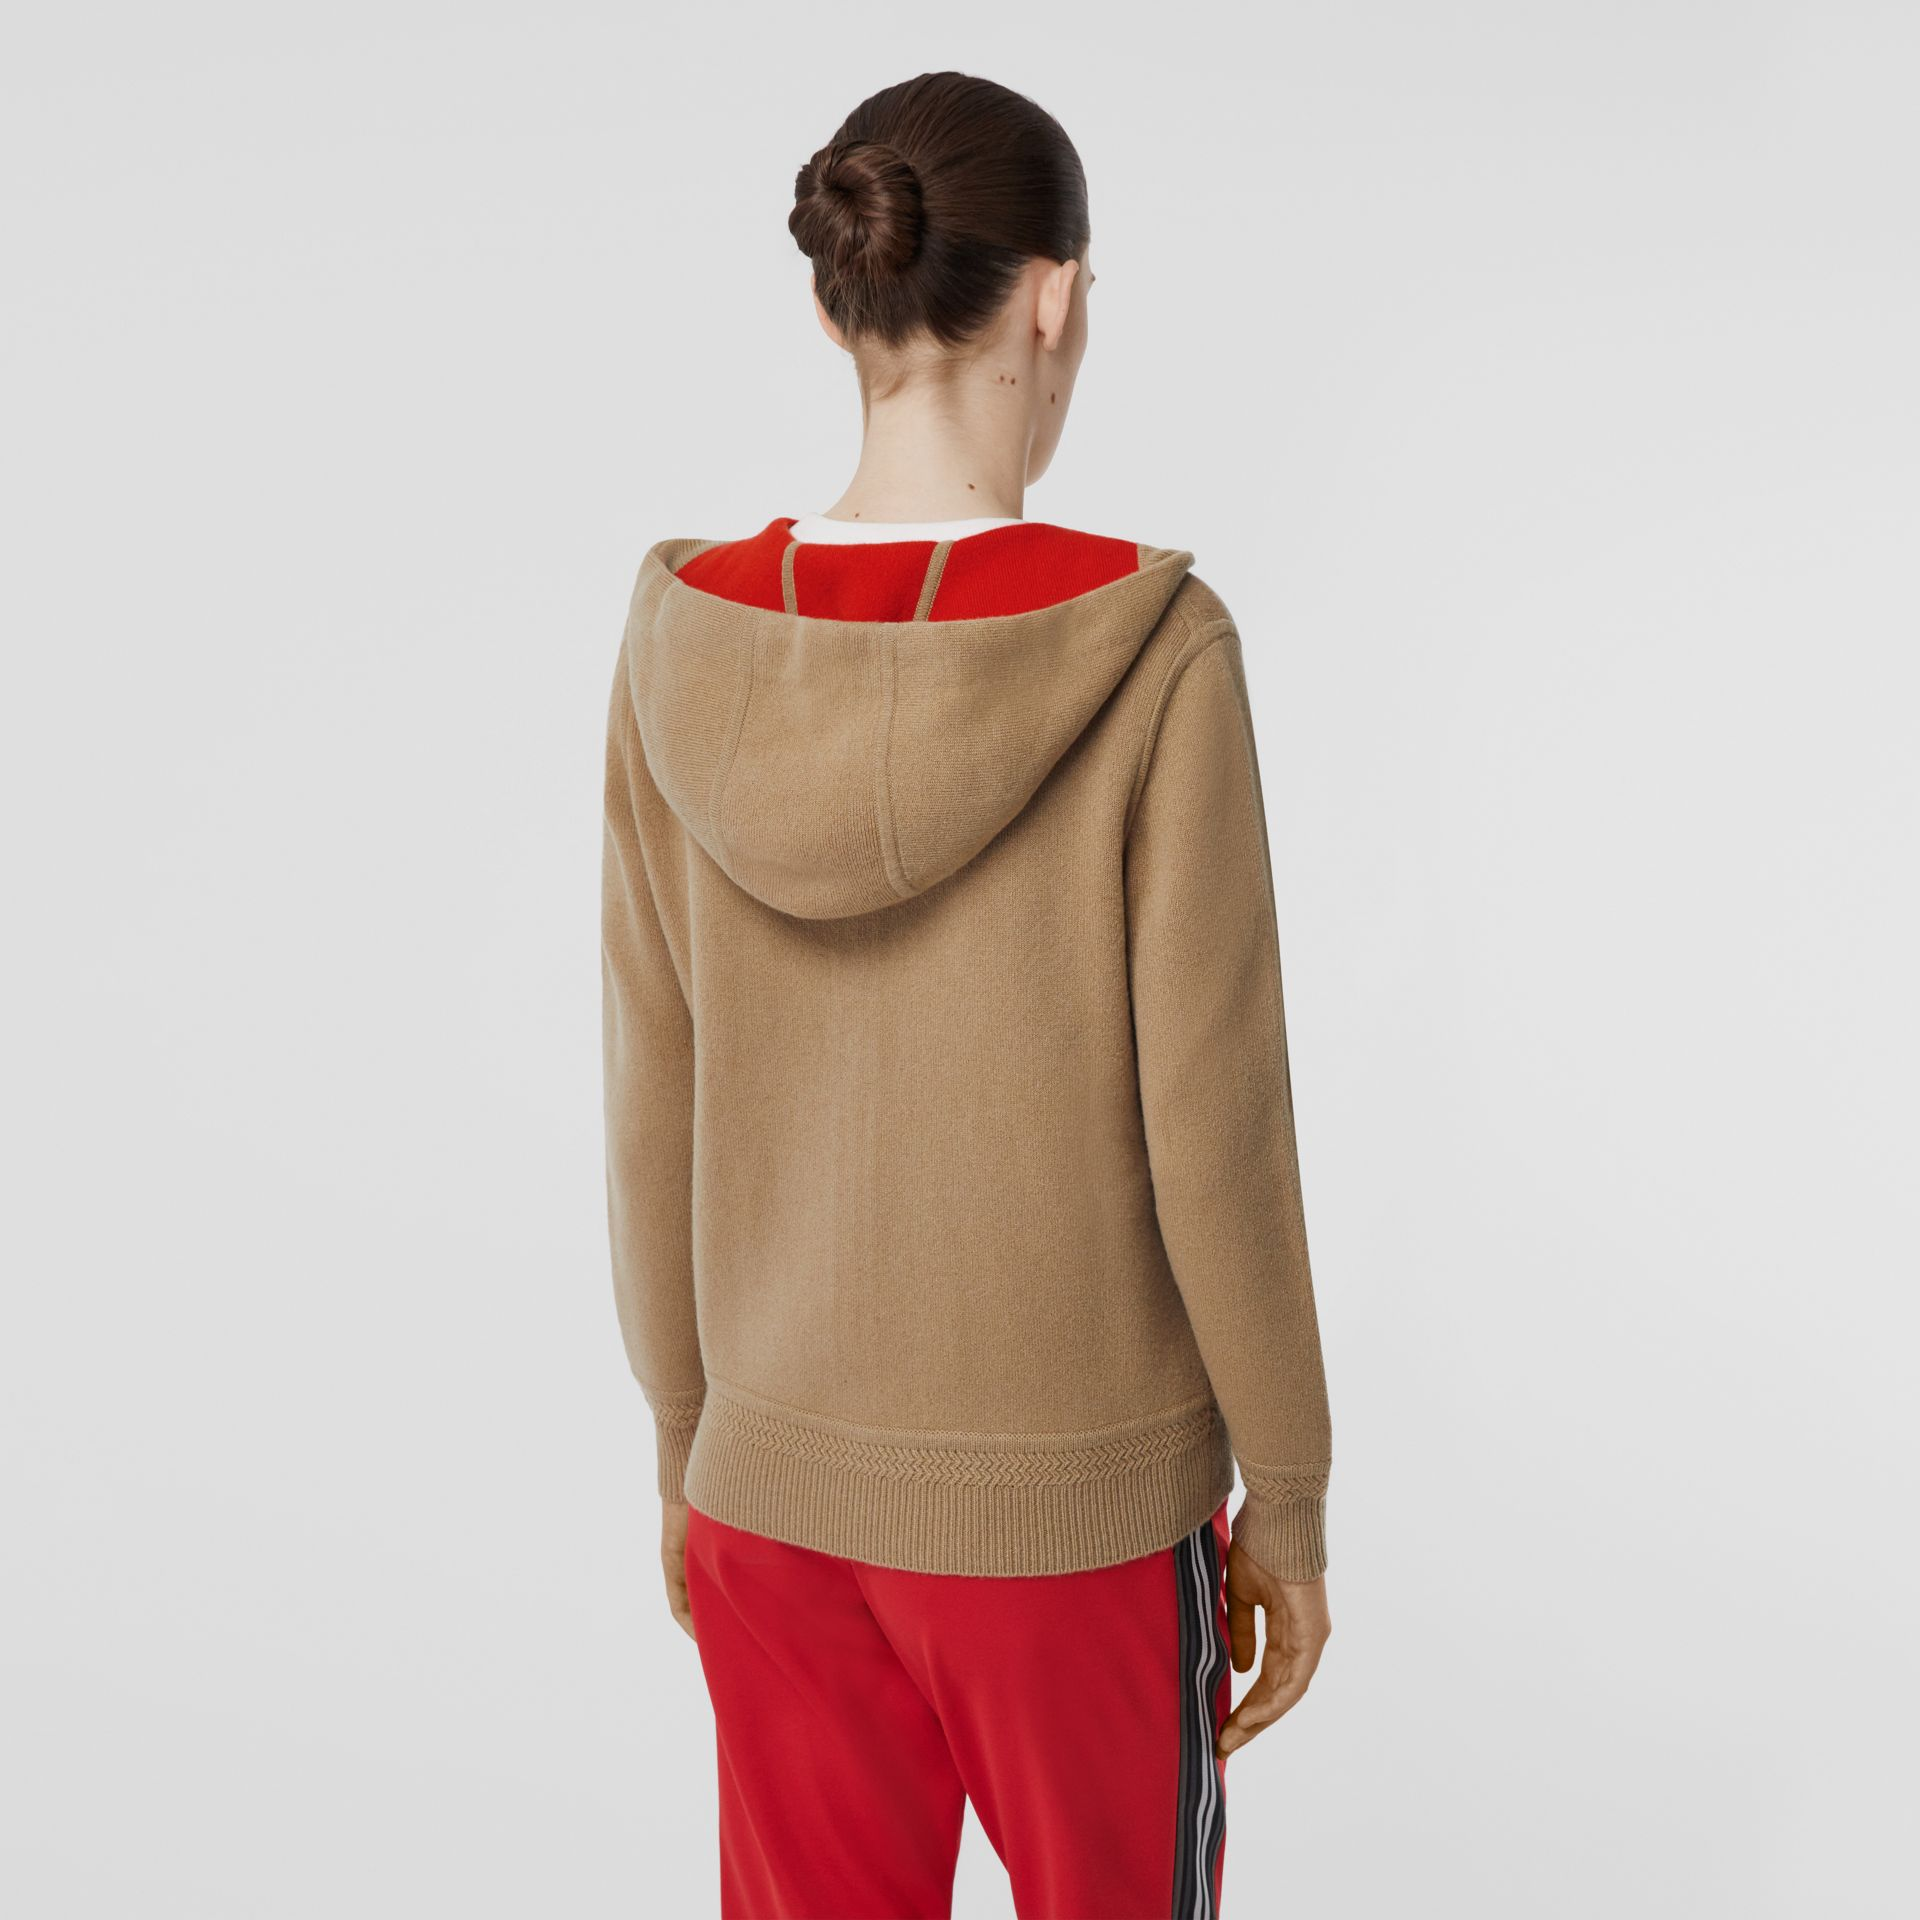 Embroidered Logo Cashmere Hooded Top in Archive Beige - Women | Burberry - gallery image 1